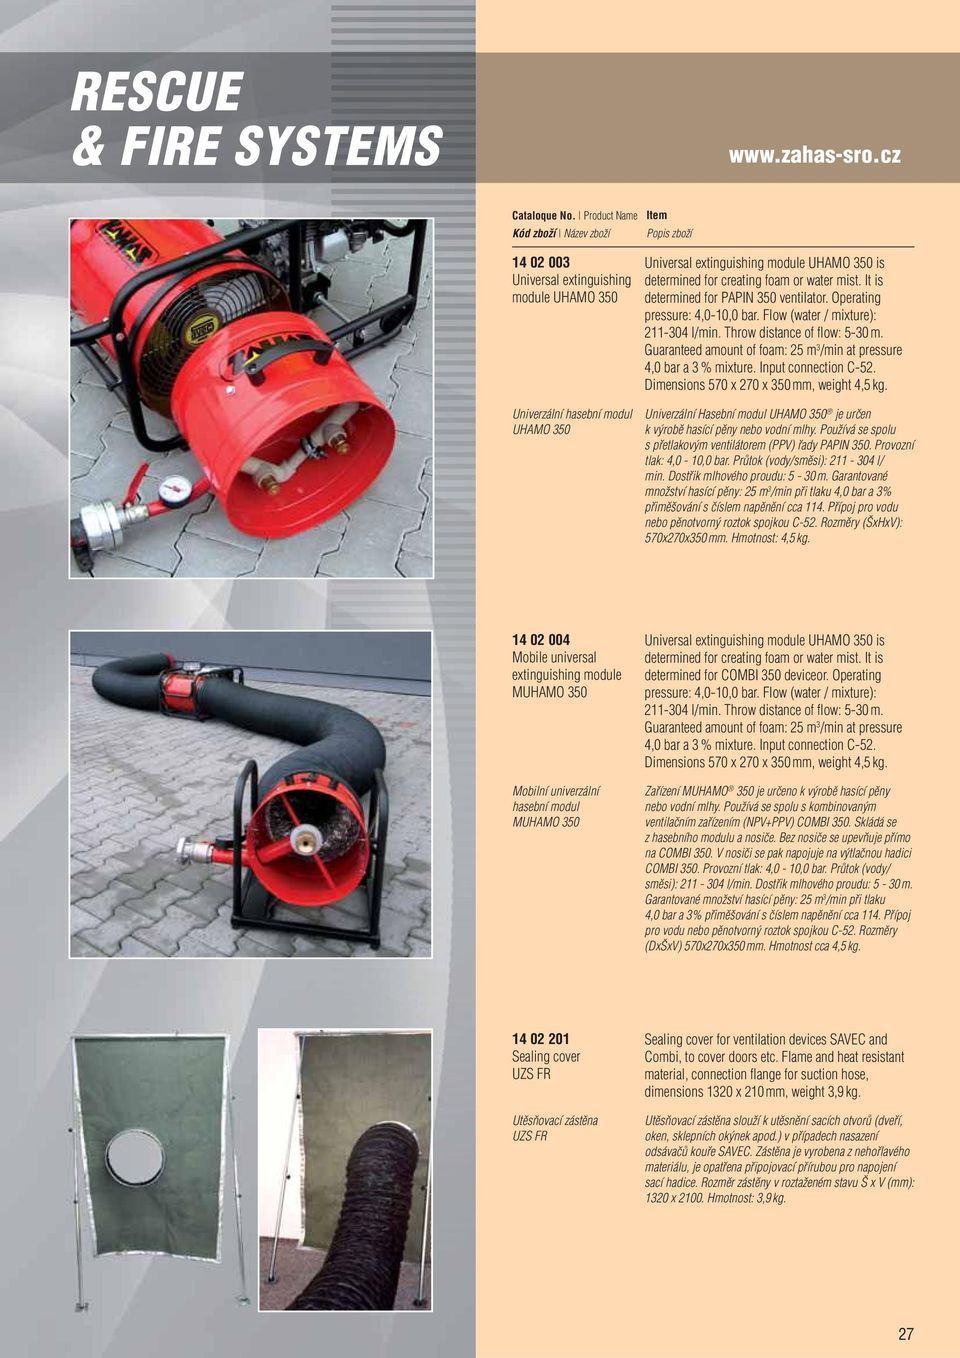 It is determined for PAPIN 350 ventilator. Operating pressure: 4,0-10,0 bar. Flow (water / mixture): 211-304 l/min. Throw distance of flow: 5-30 m.